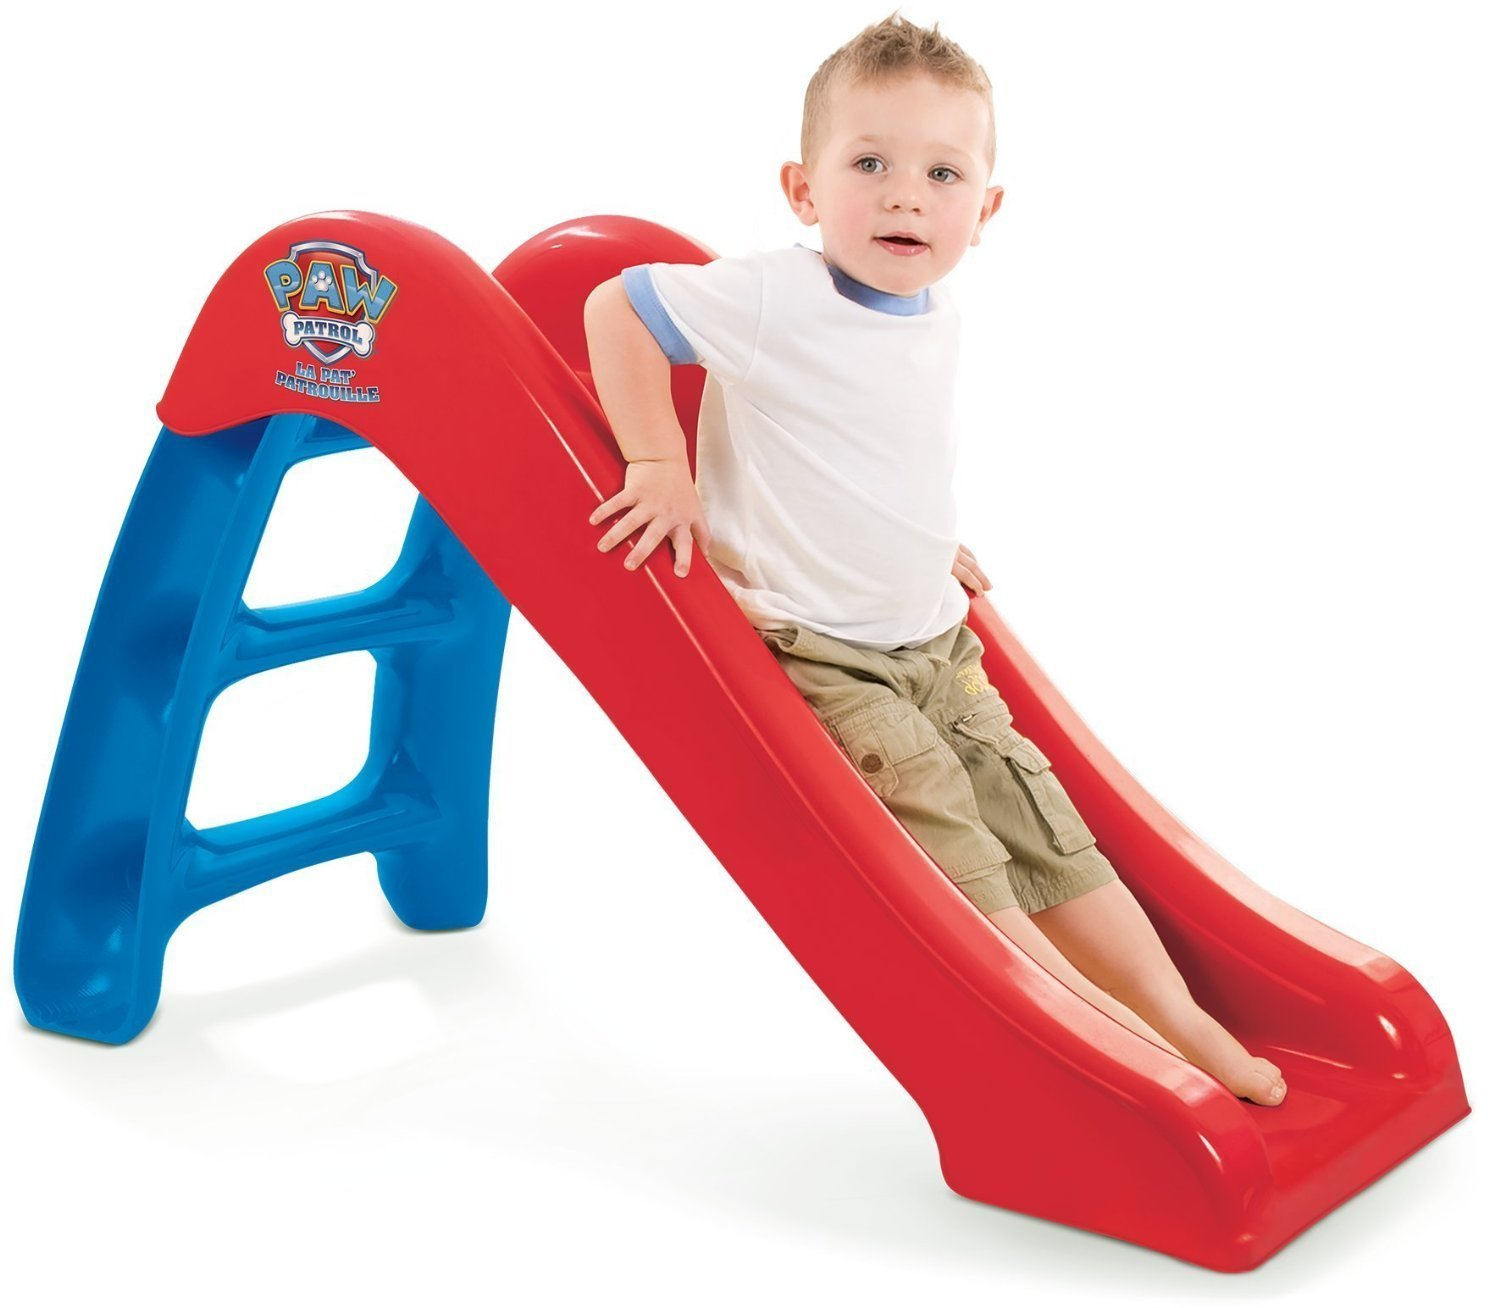 Paw Patrol Kids Childrens ficial Junior Play Slide Outdoor